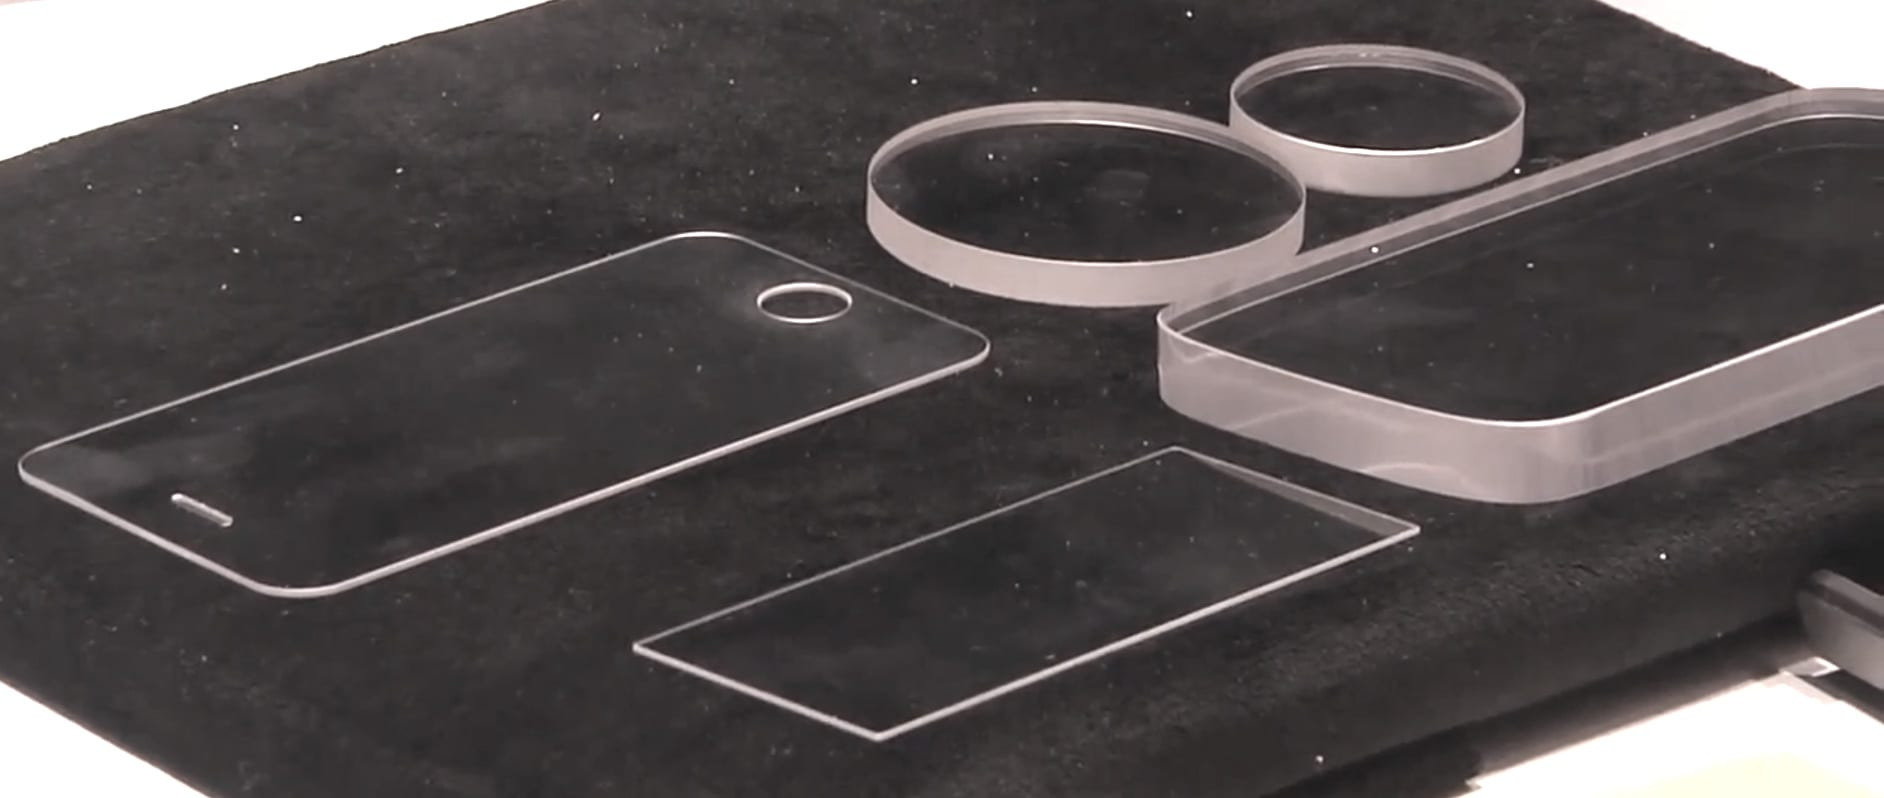 Sapphire screens to protect future iPhones?